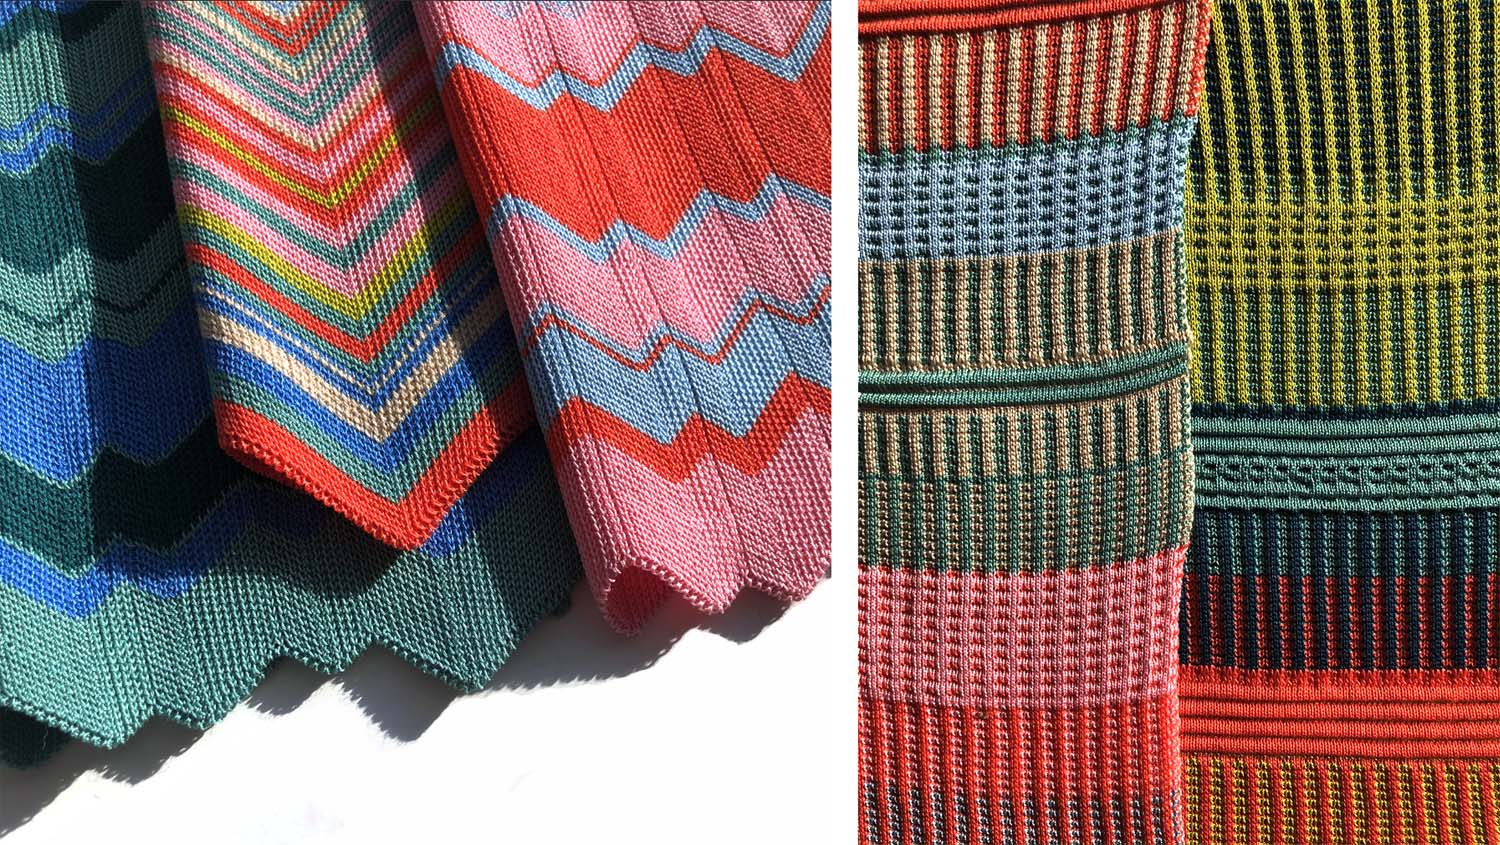 Chevron and Pocket technique knitted samples.